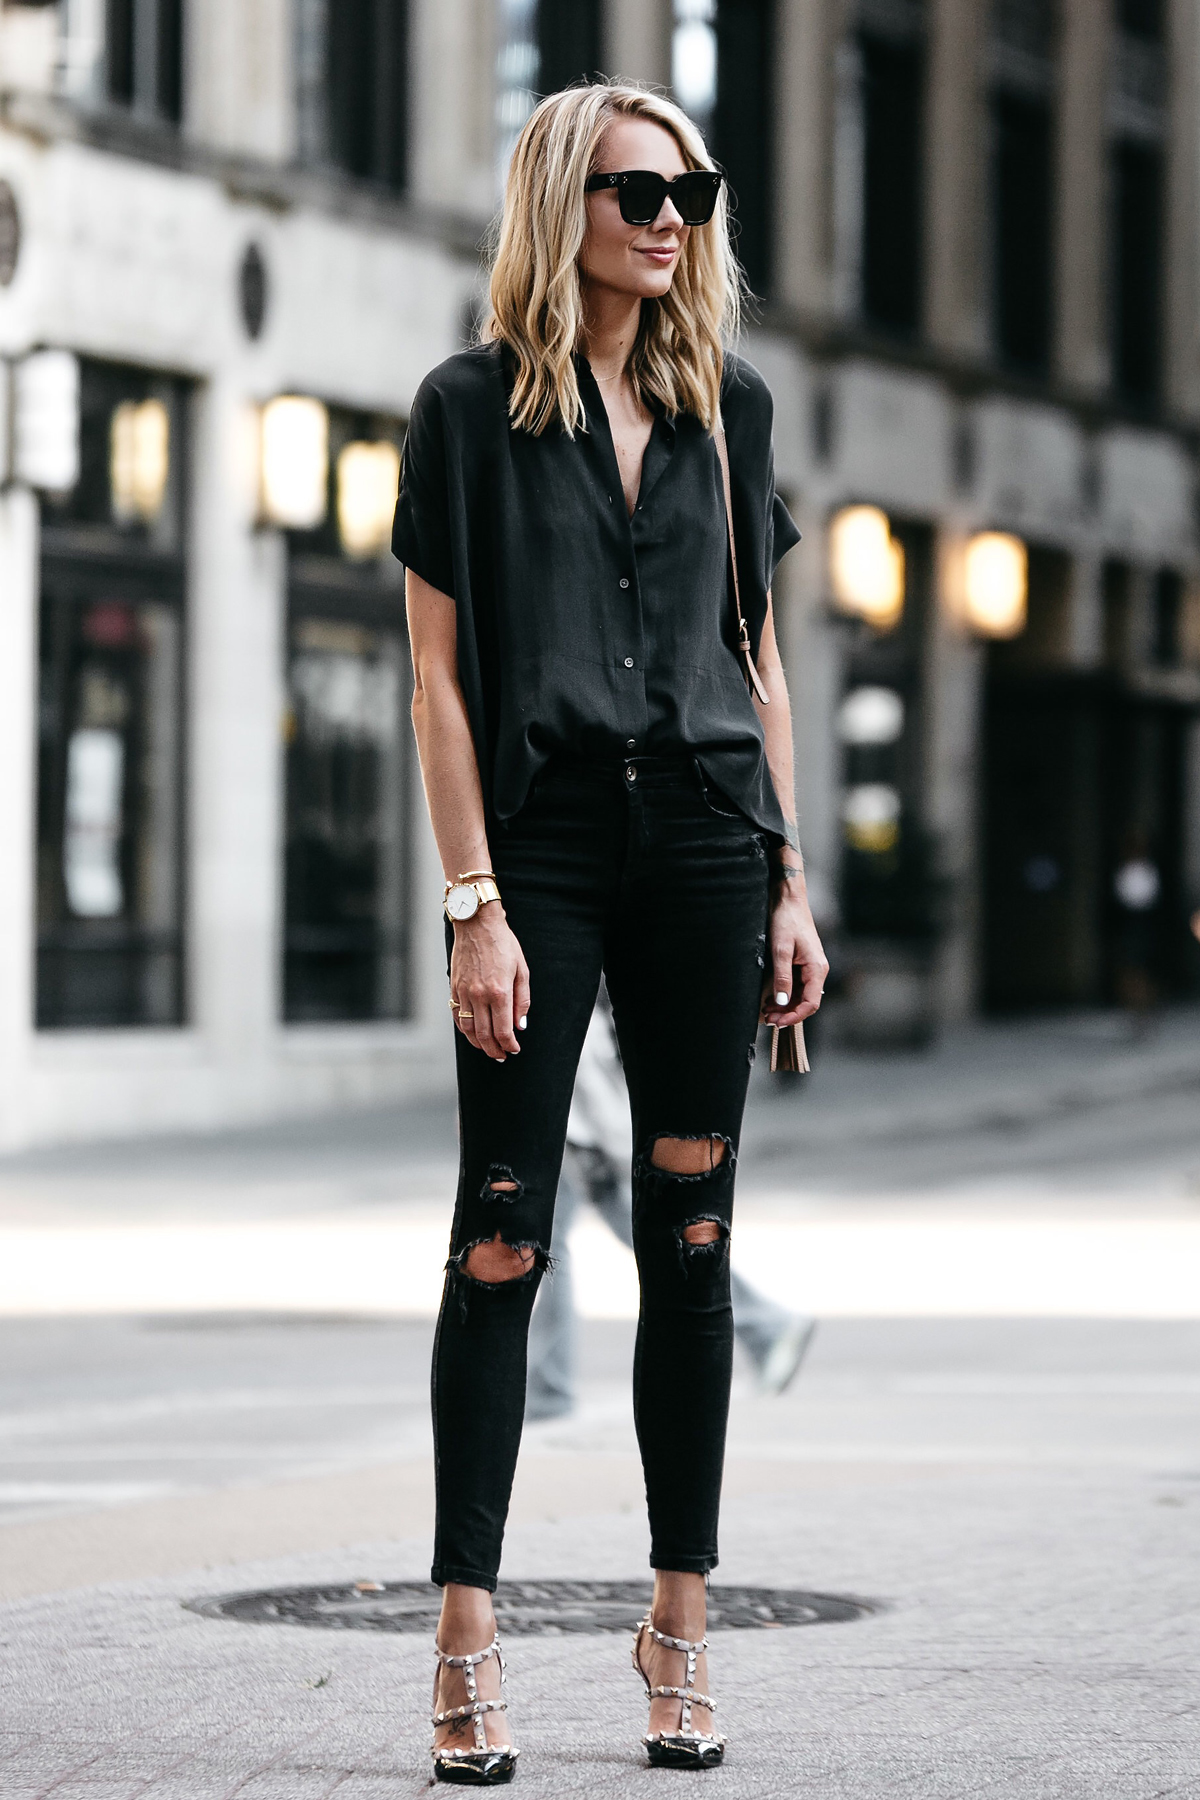 Blonde Woman Wearing Everlane Black Short Sleeve Button Up Shirt Zara Black Ripped Skinny Jeans Outfit Valentino Rockstud Pumps Fashion Jackson Dallas Blogger Fashion Blogger